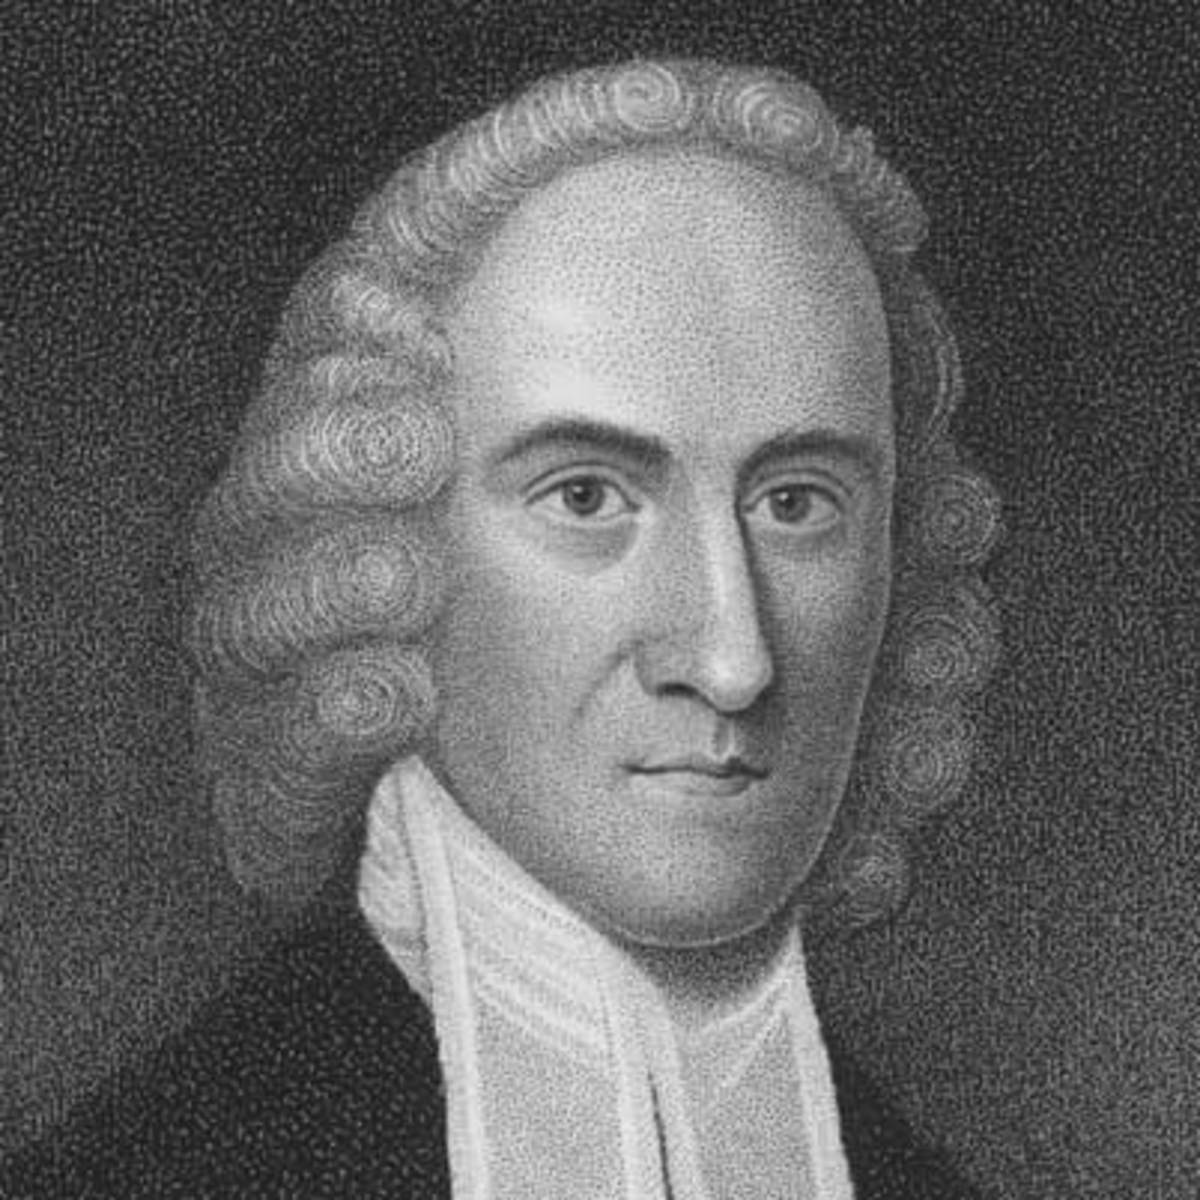 the great awakening with jonathan edwards essay Jonathan edwards lived during the great awakening he graduated from yale when he was 17 years old then, he served as a congregationalist protestant preacher and missionary to the native americans jonathan edwards is known as one of the most famous theologians his most famous sermon is sinners.